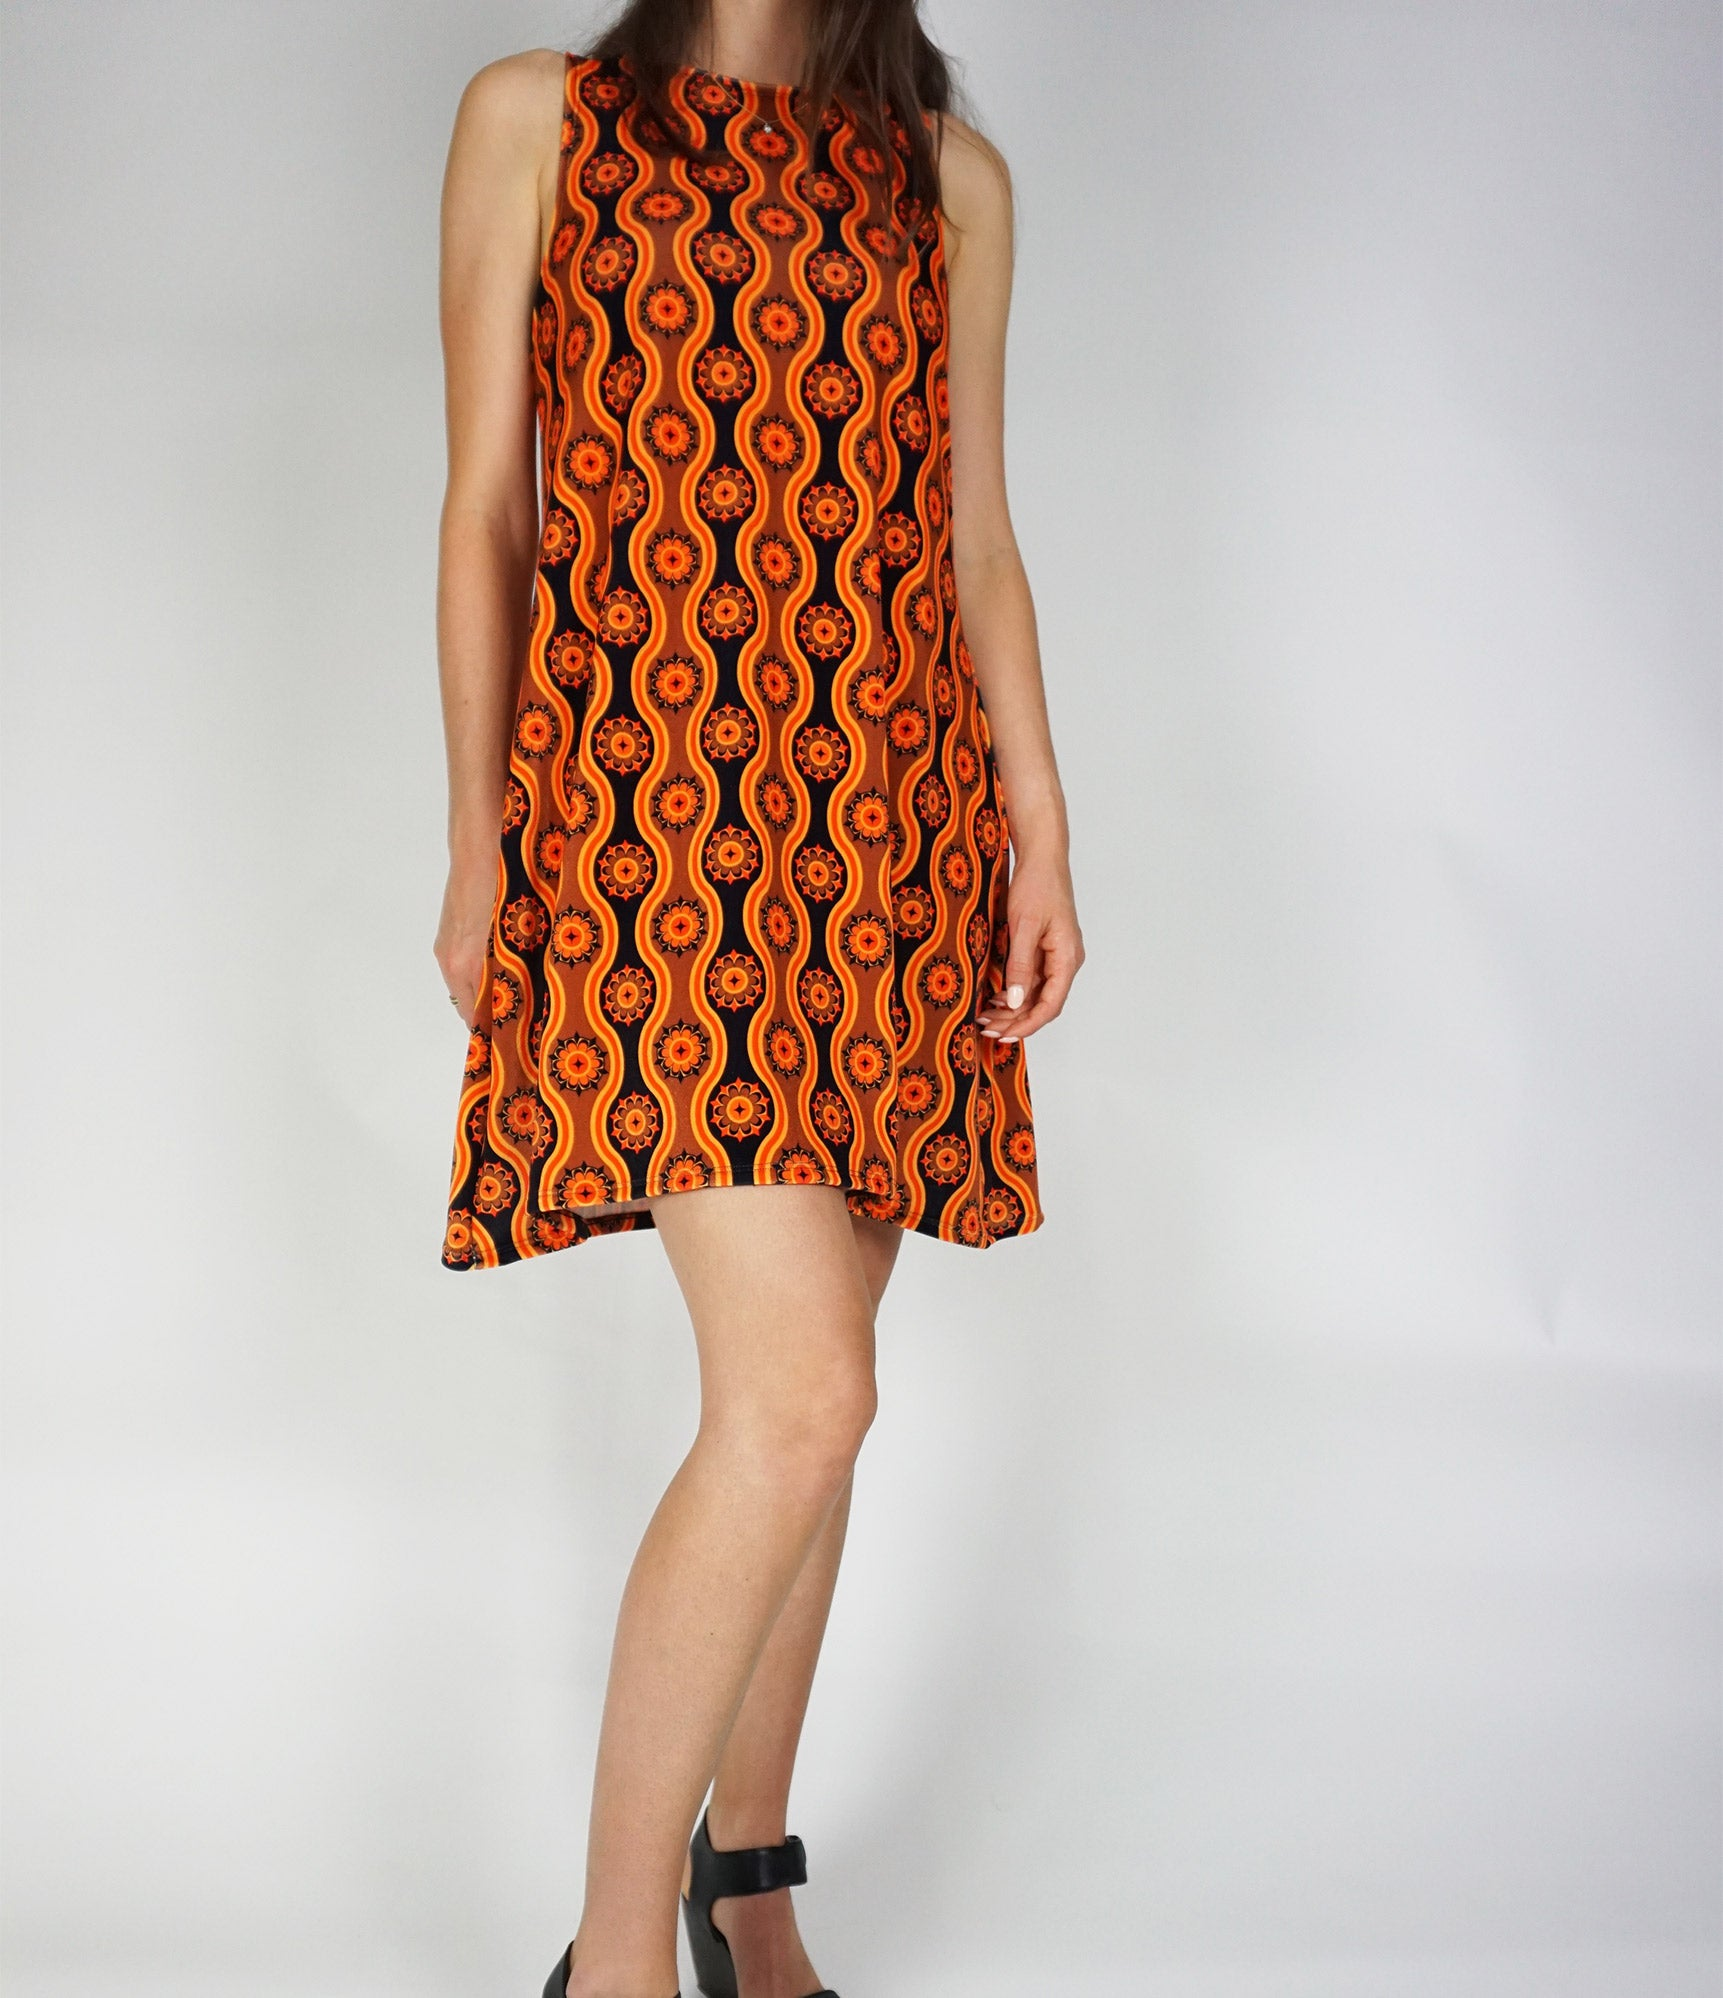 Ophir Dress - Tan